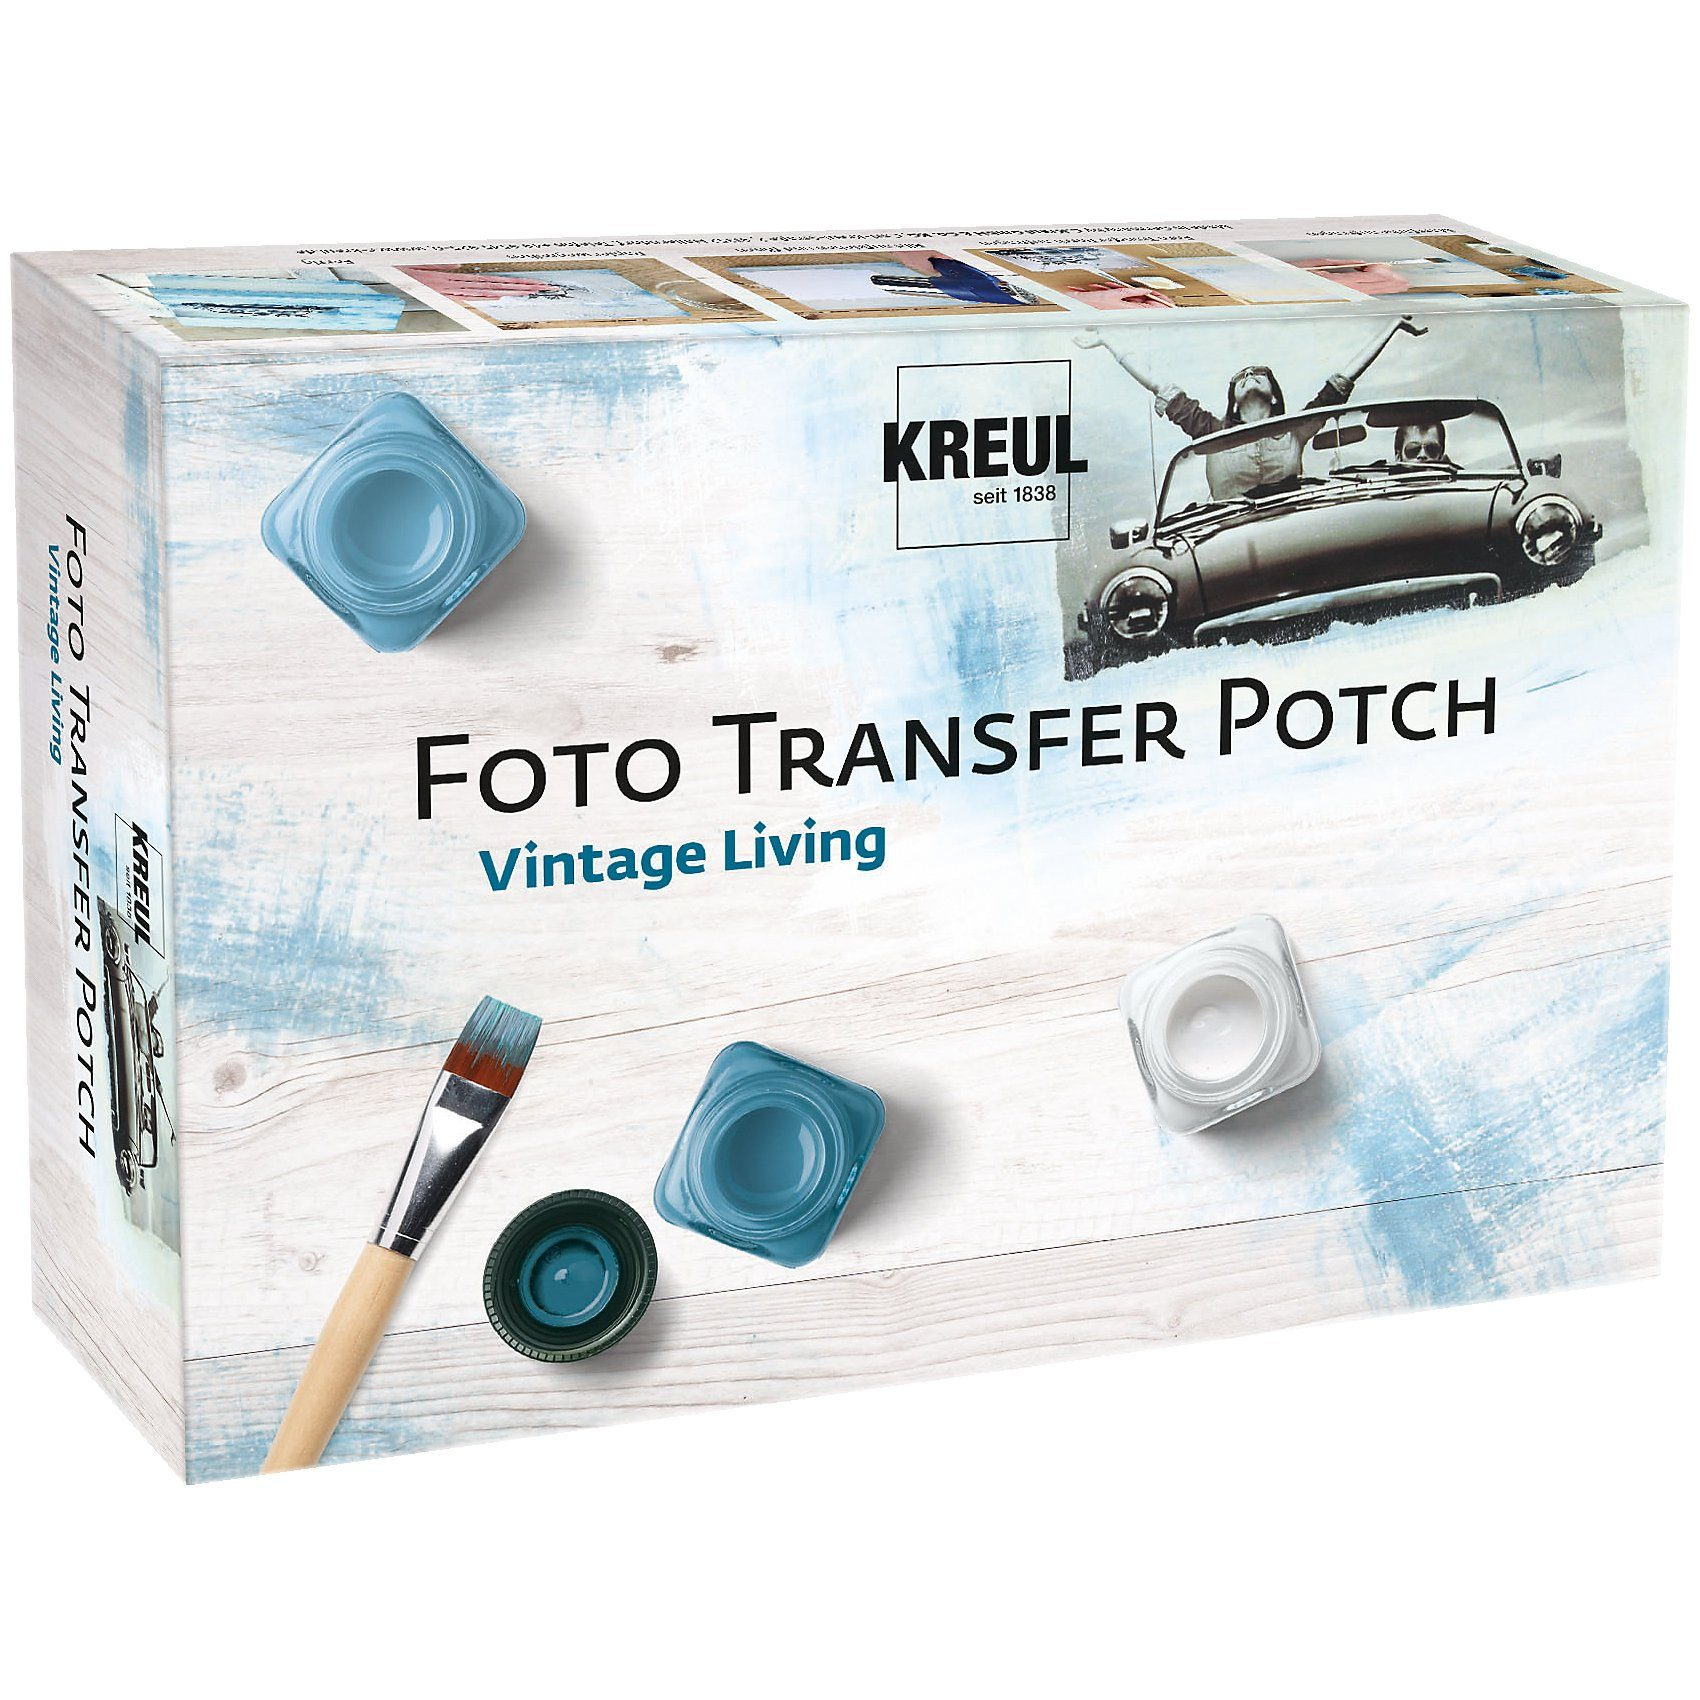 C. KREUL Foto Transfer Potch Set Vintage Living